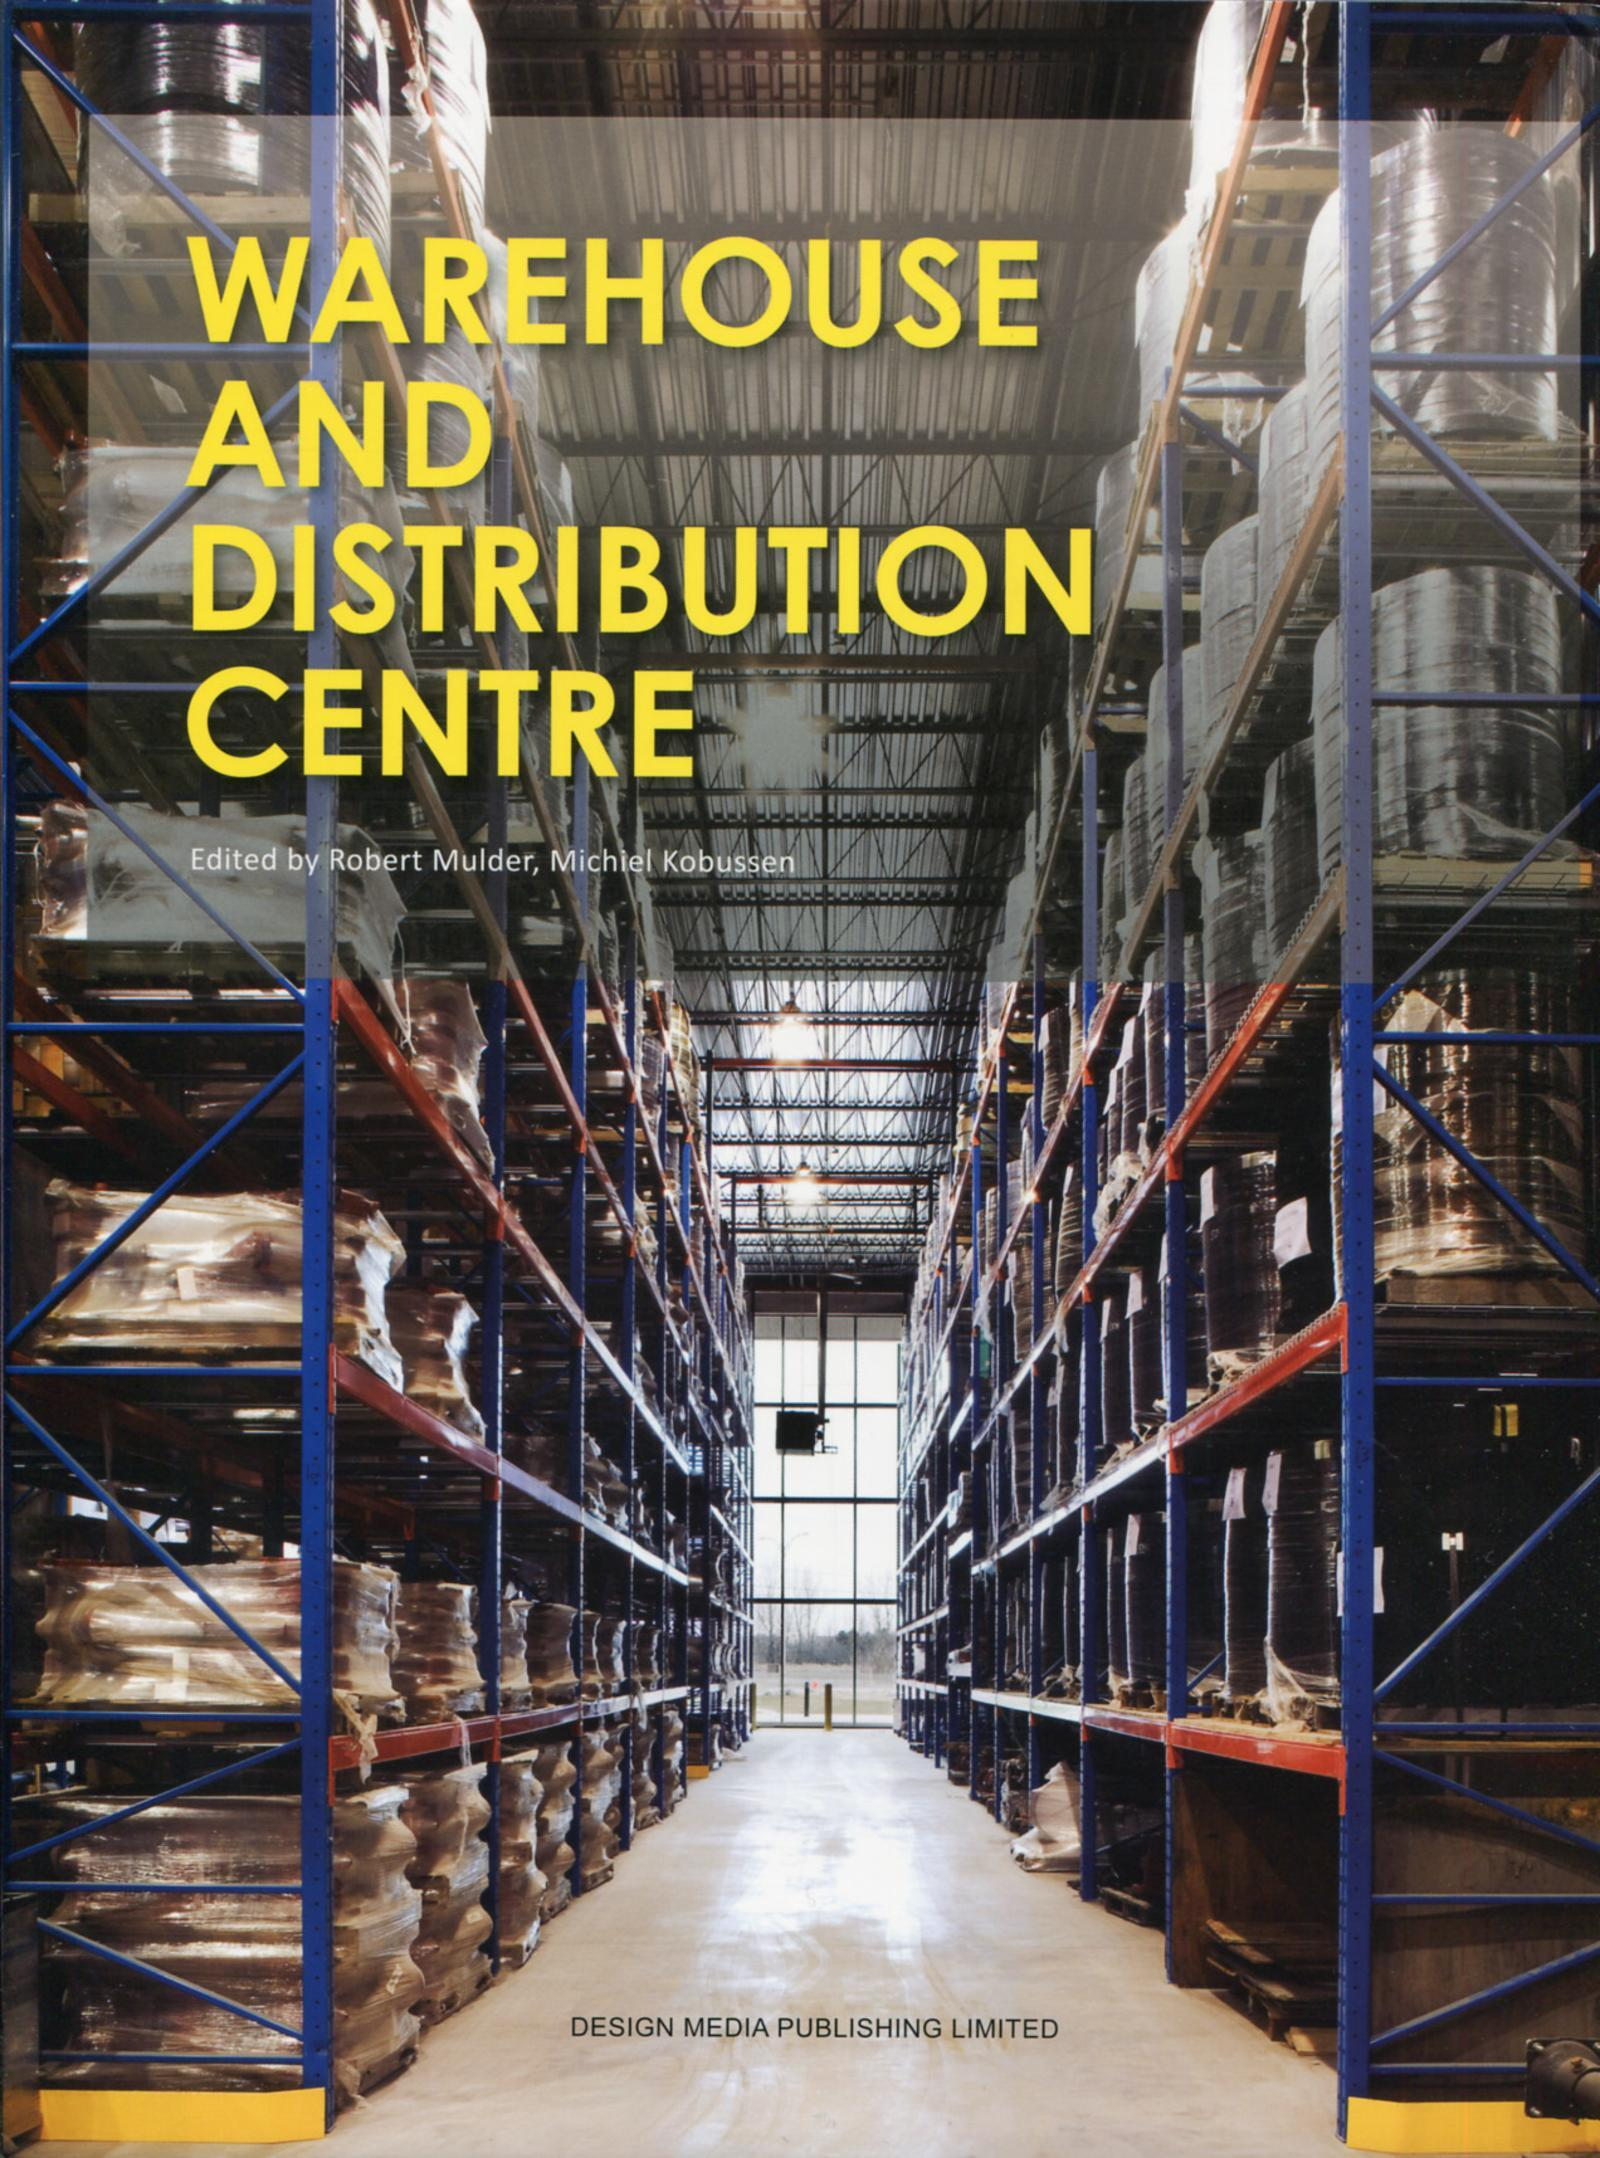 WAREHOUSE AND DISTRIBUTION CENTRE